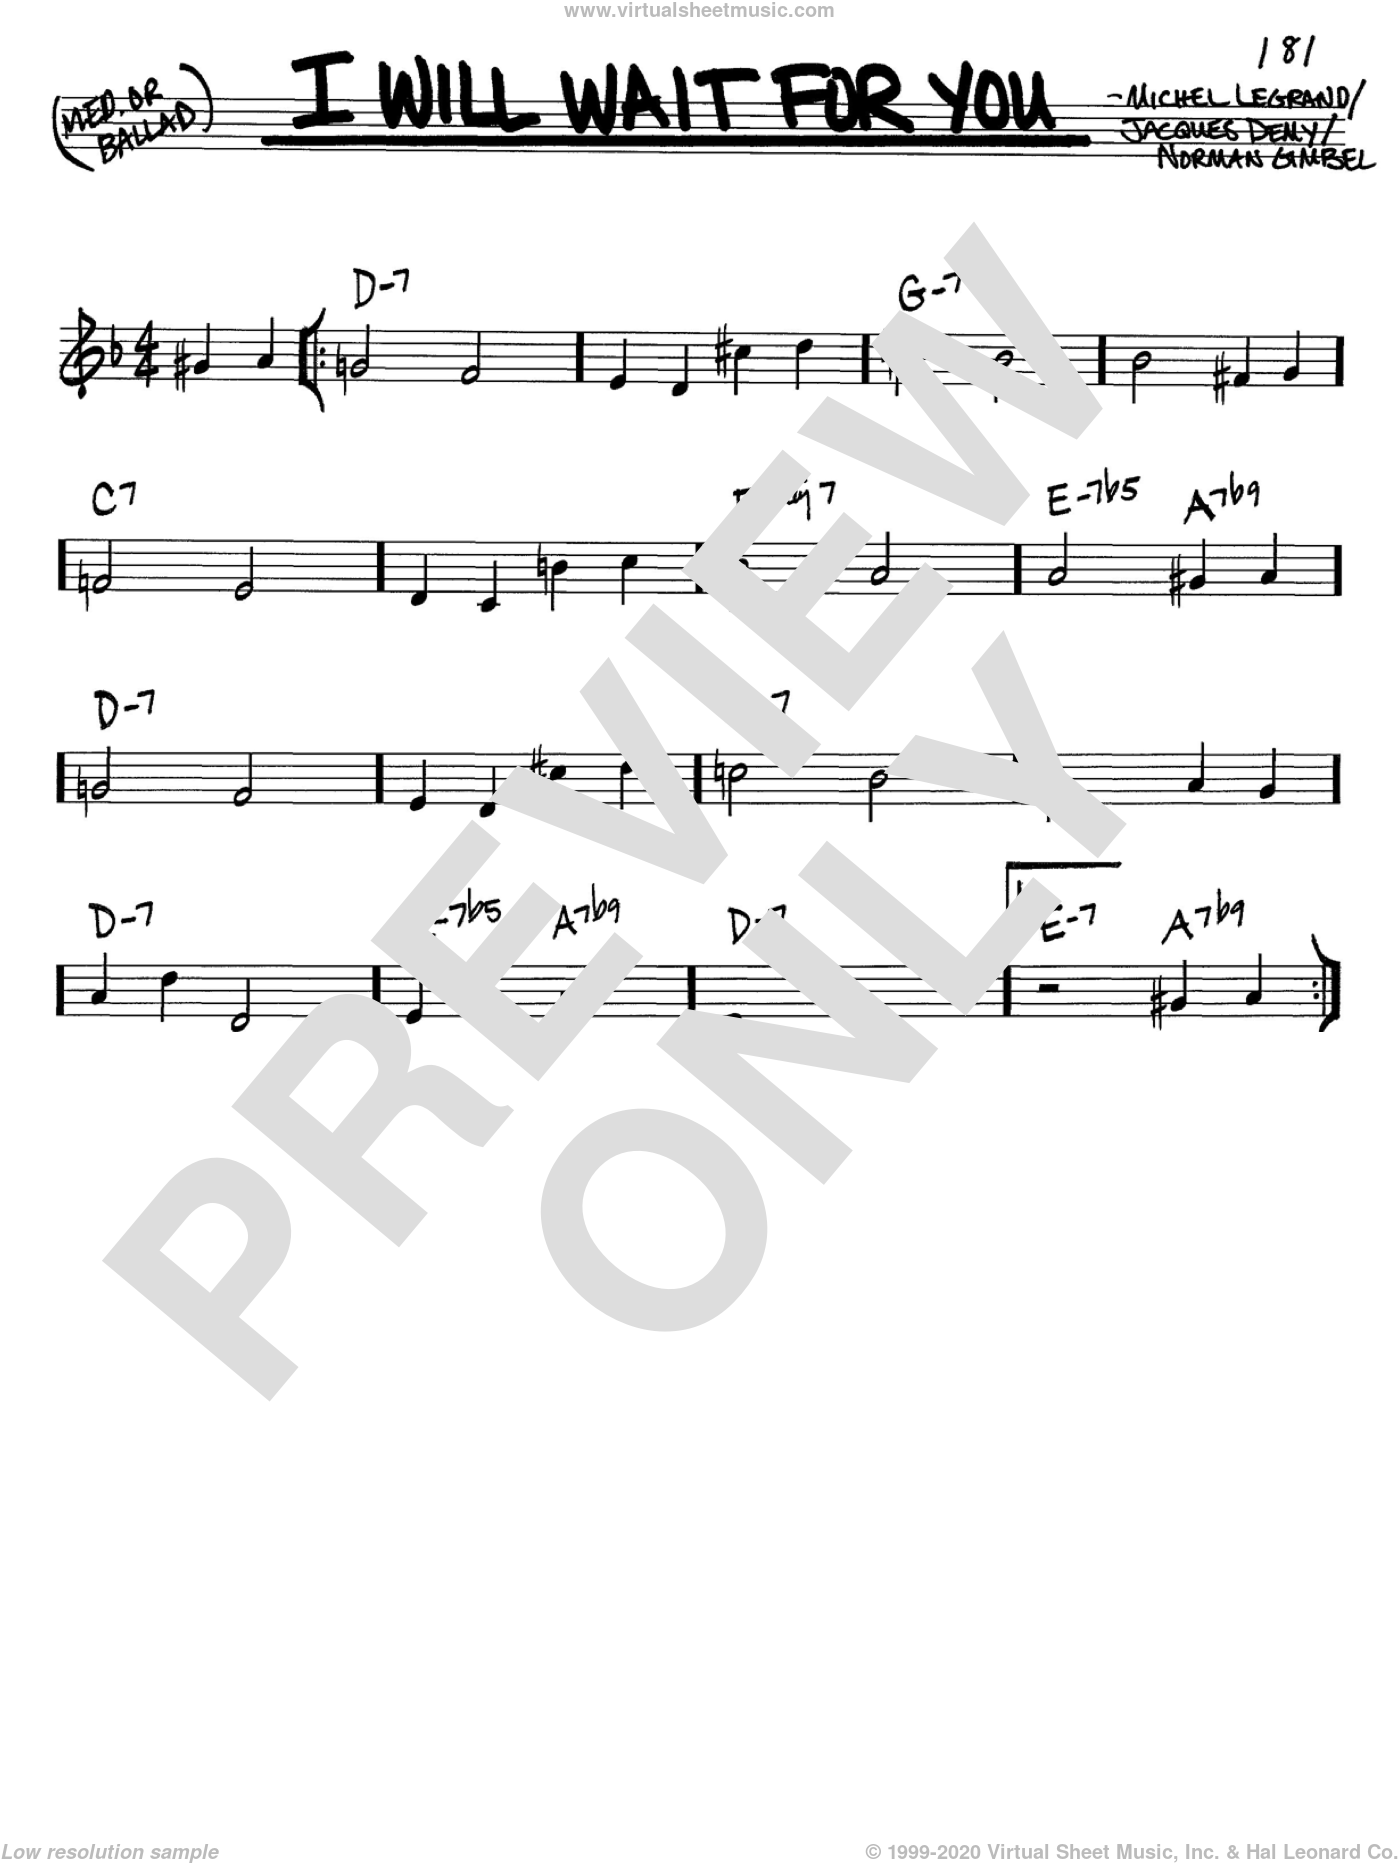 I Will Wait For You sheet music for voice and other instruments (in C) by Michel LeGrand, Jacques Demy and Norman Gimbel, intermediate skill level